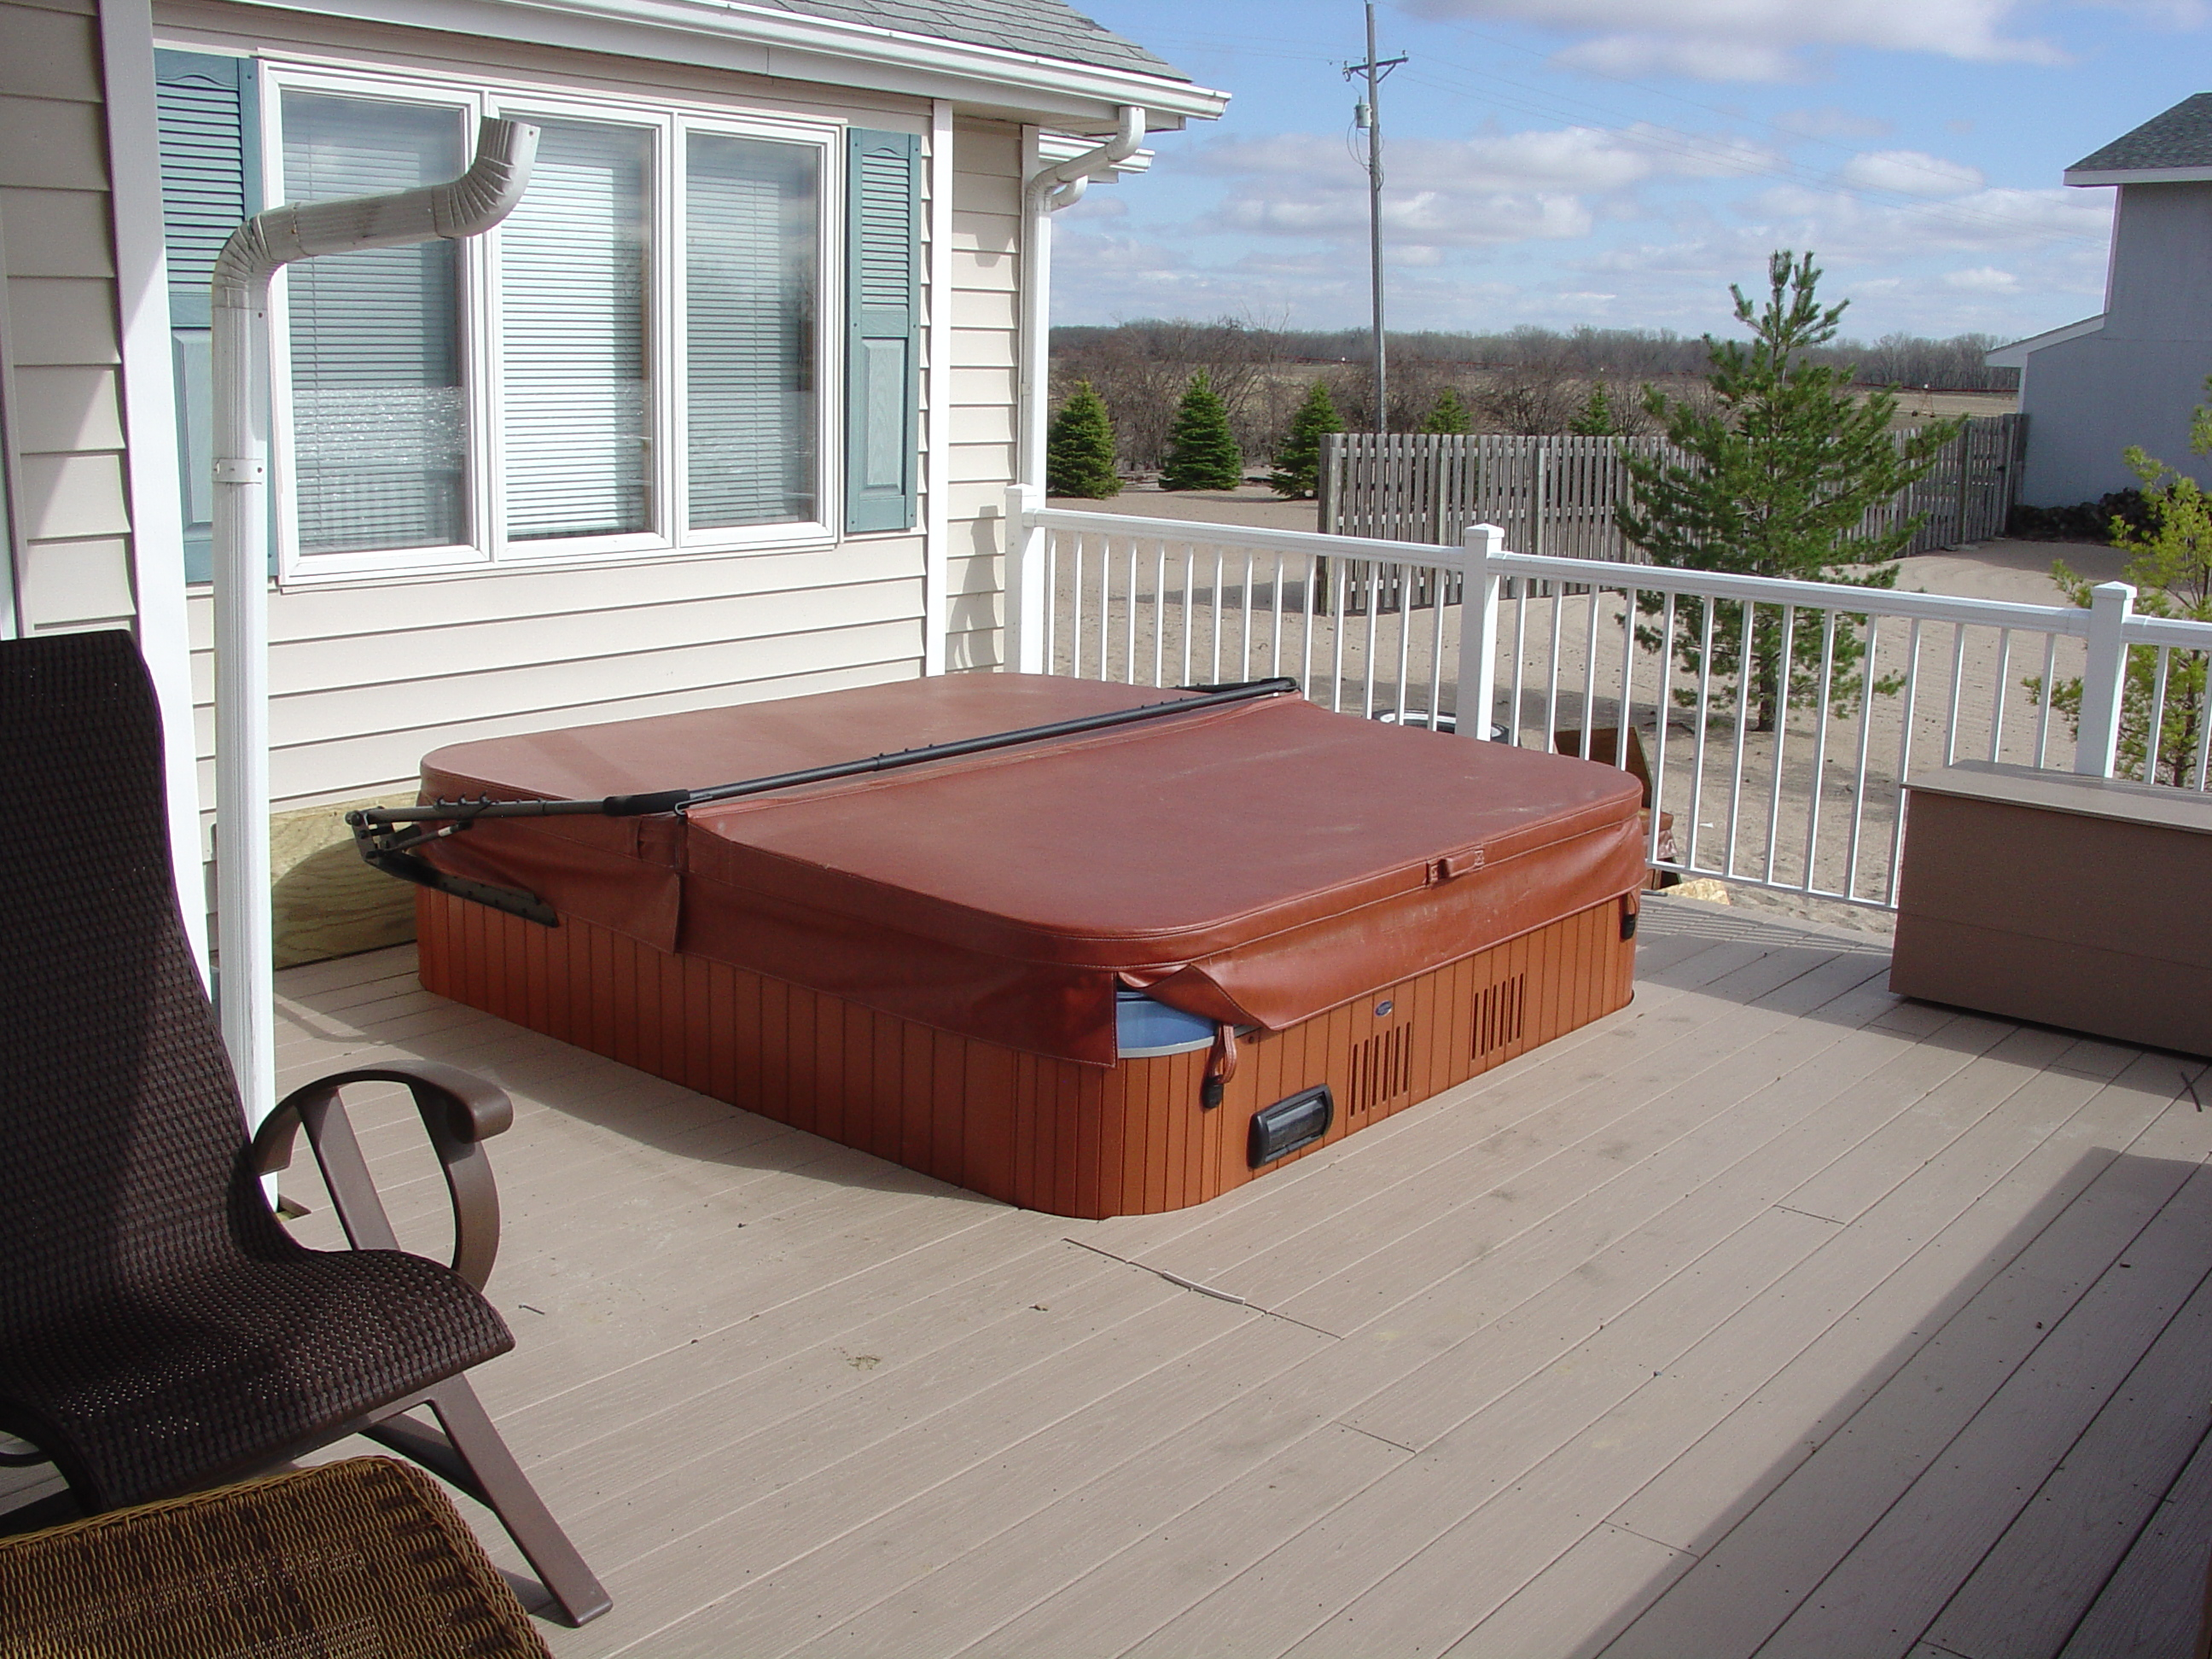 Free deck designs for hot tubs joy studio design gallery for Hot tub deck designs plans